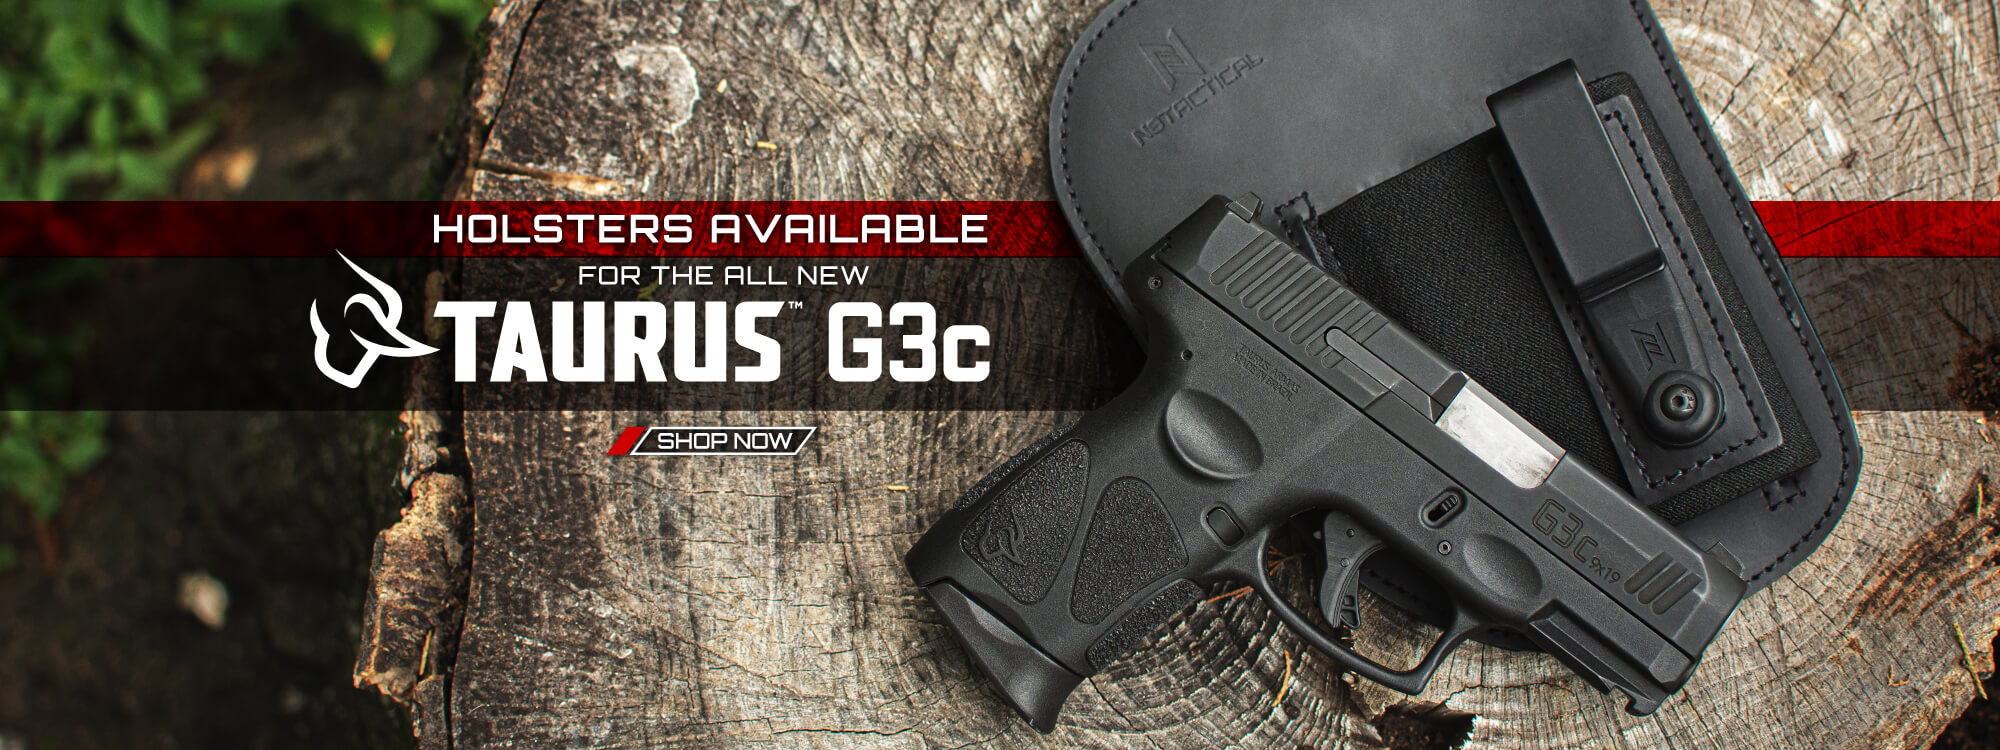 Holsters Available for the All New Taurus G3c